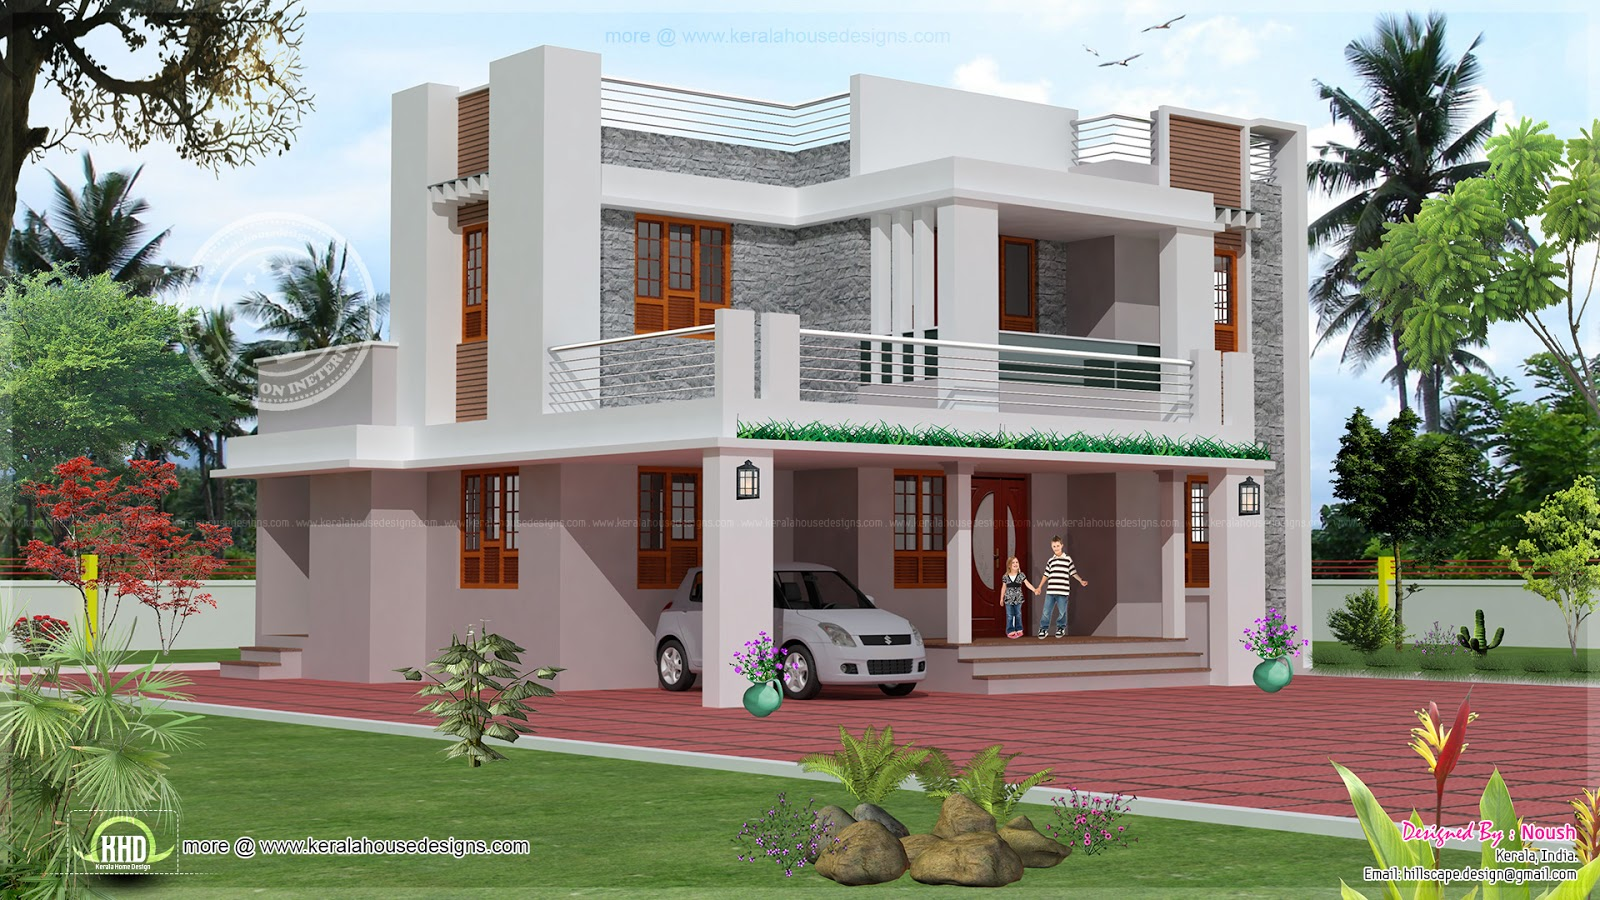 4 bedroom 2 story house exterior design house design plans for Exterior 2 story homes